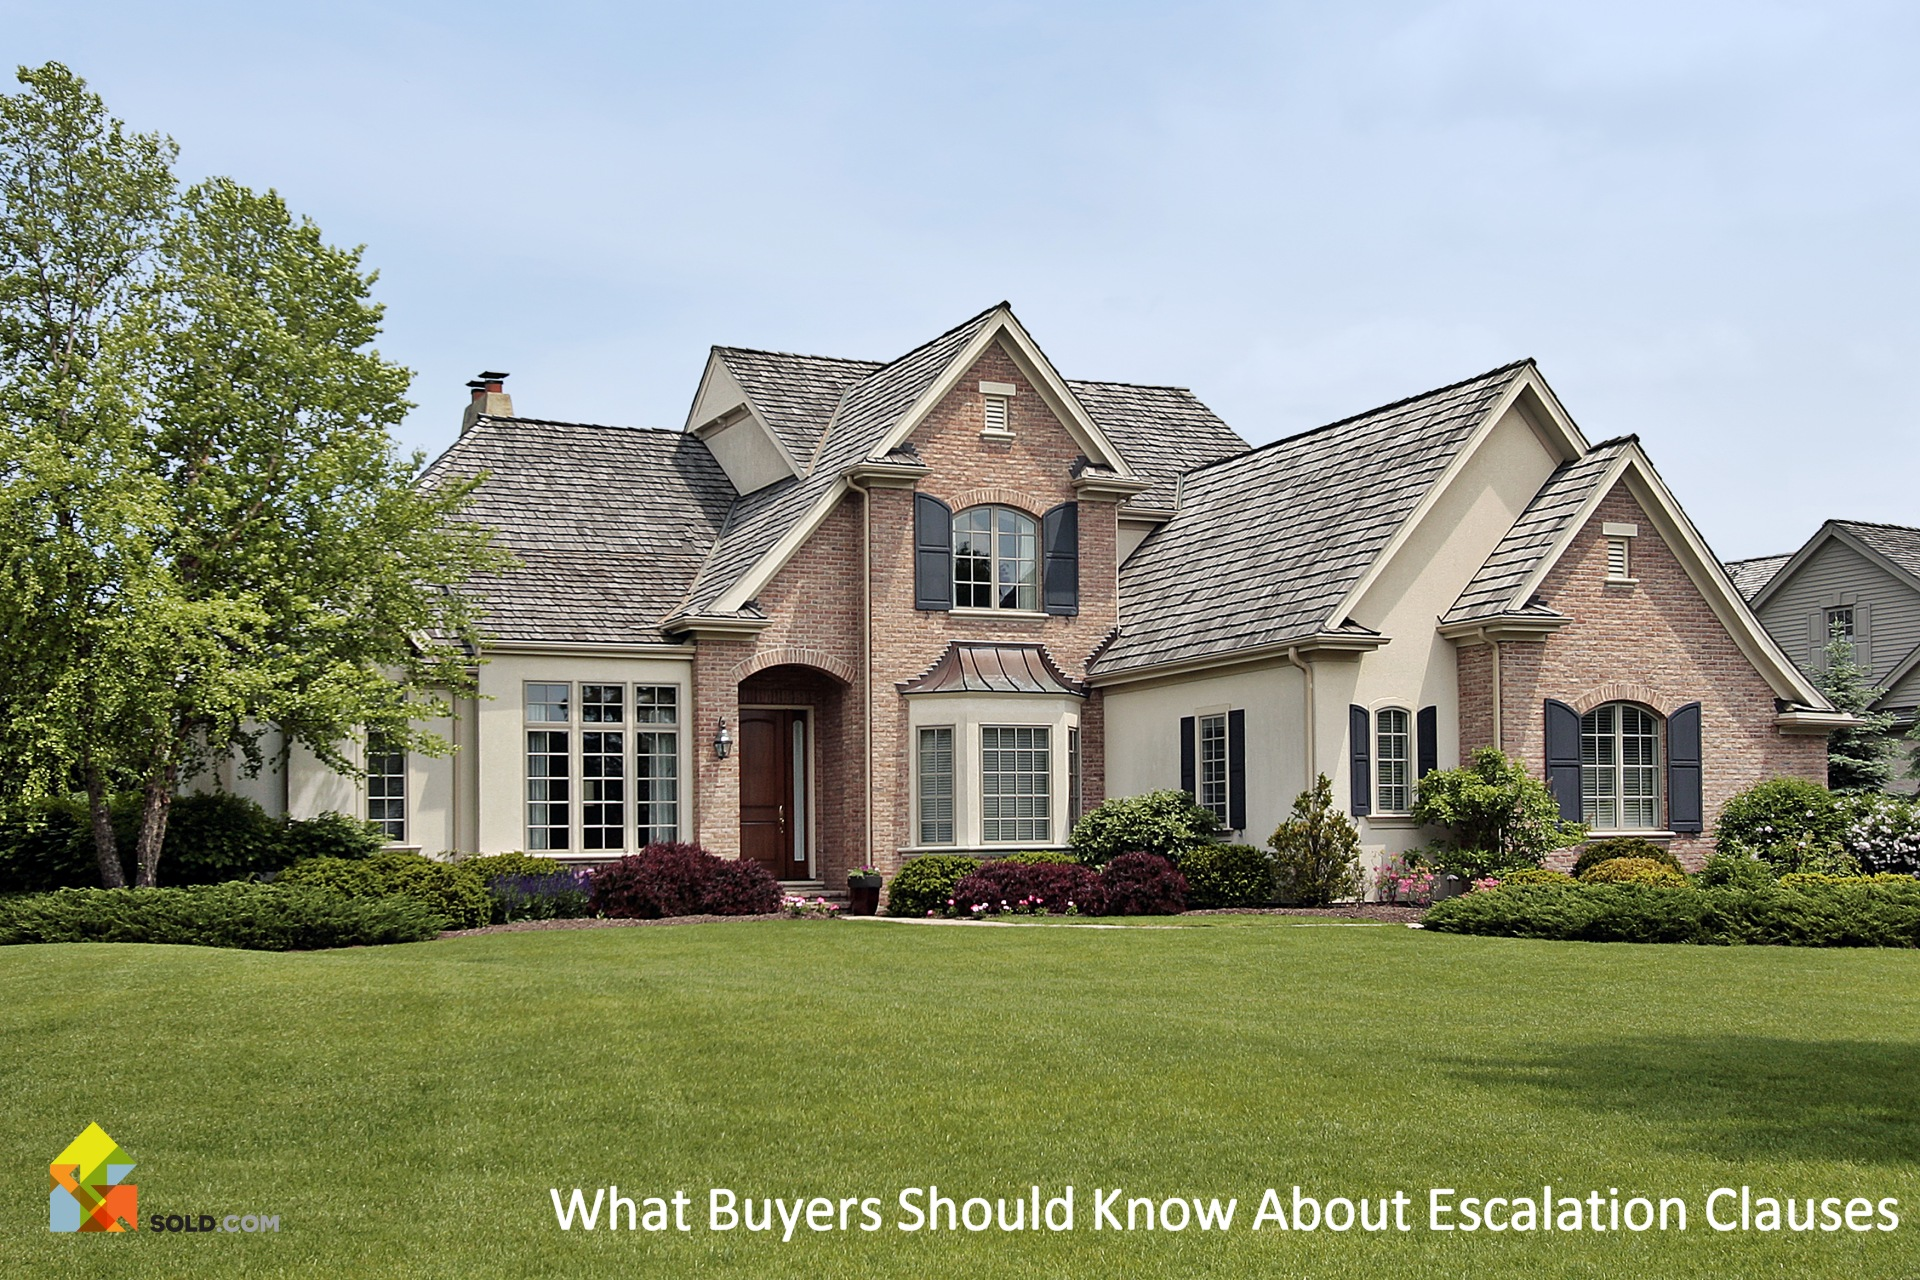 What Buyers Should Know About Escalation Clauses